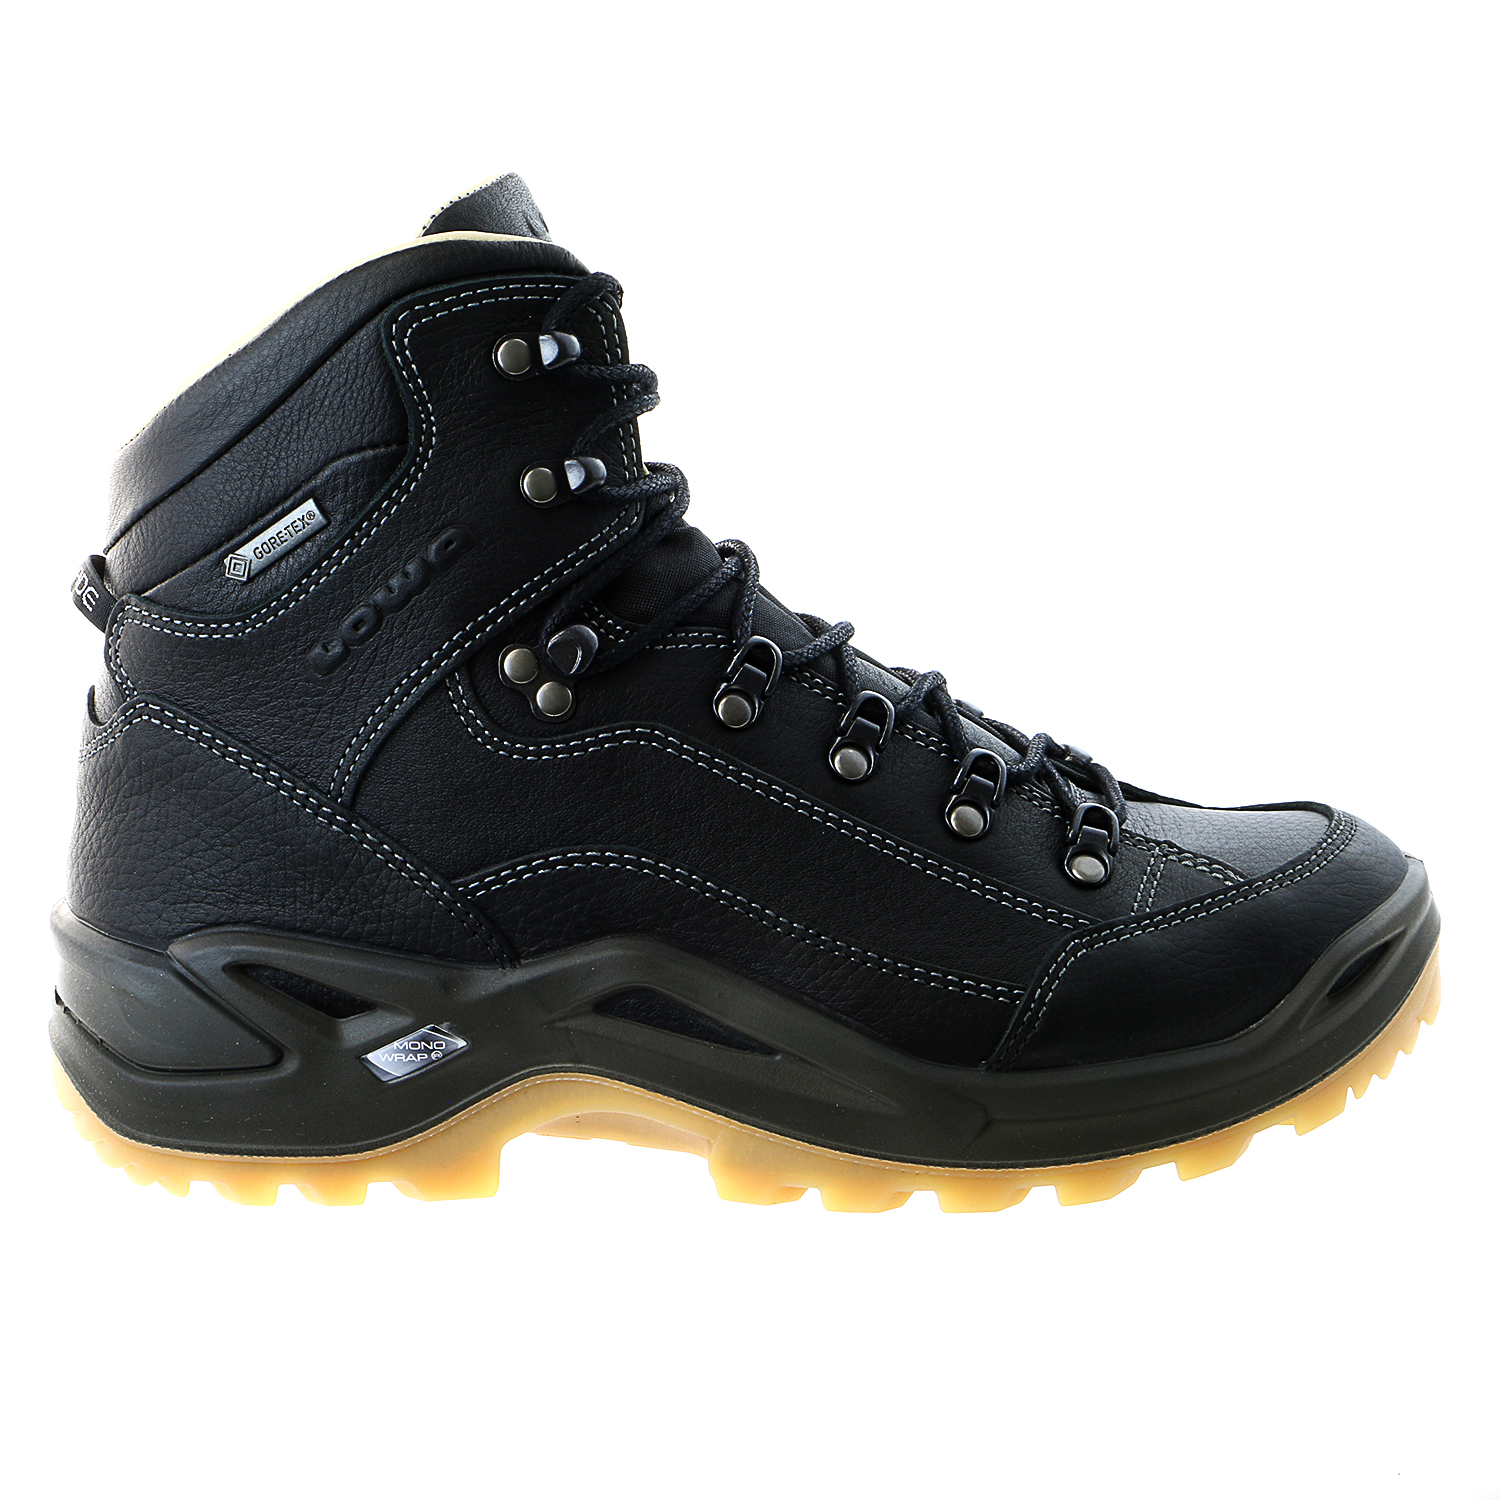 Lowa Renegade DLX GTX Mid Hiking Boot Shoe Mens by Lowa